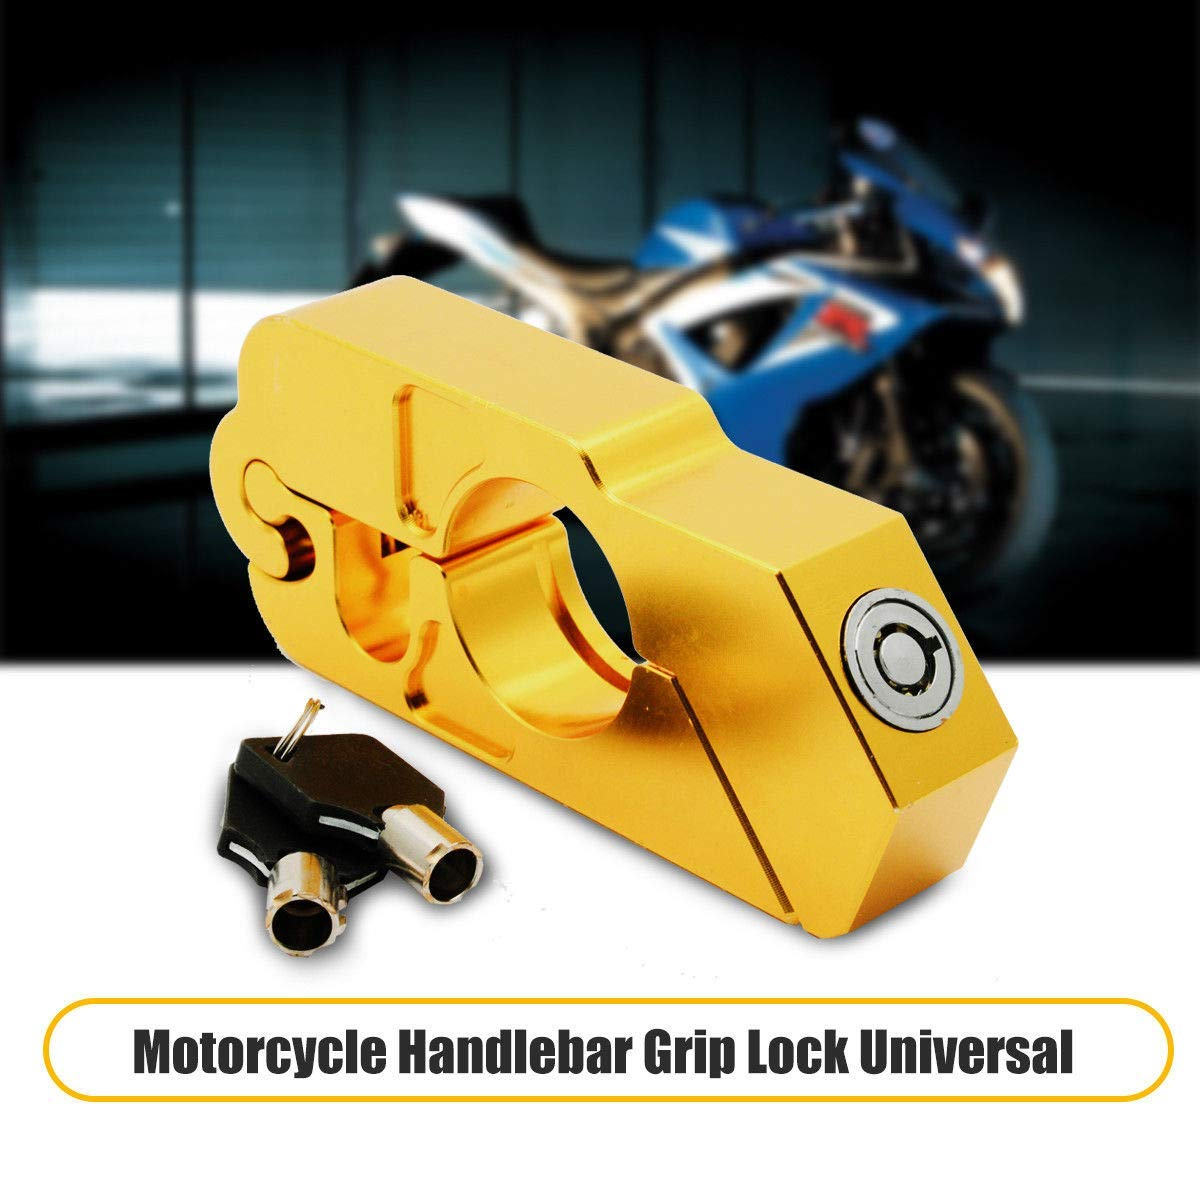 Gold YC Universal Motorcycle Handlebar Lock Motorbike Motorcycle Handlebar Throttle Grip Lock Aluminum Alloy Anti-theft Brake Level Lock for Bike Scooter Moped ATV